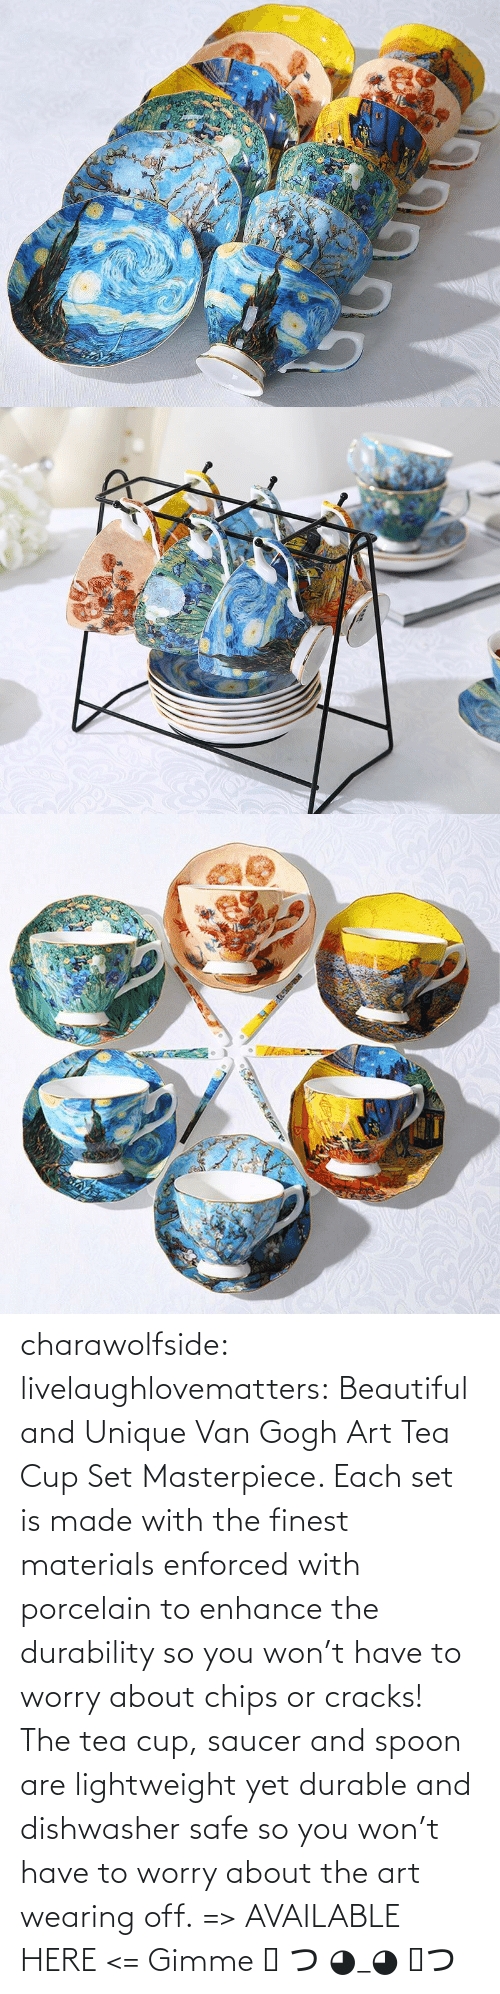 van: charawolfside:  livelaughlovematters: Beautiful and Unique Van Gogh Art Tea Cup Set Masterpiece. Each set is made with the finest materials enforced with porcelain to enhance the durability so you won't have to worry about chips or cracks! The tea cup, saucer and spoon are lightweight yet durable and dishwasher safe so you won't have to worry about the art wearing off. => AVAILABLE HERE <=    Gimme ༼ つ ◕_◕ ༽つ